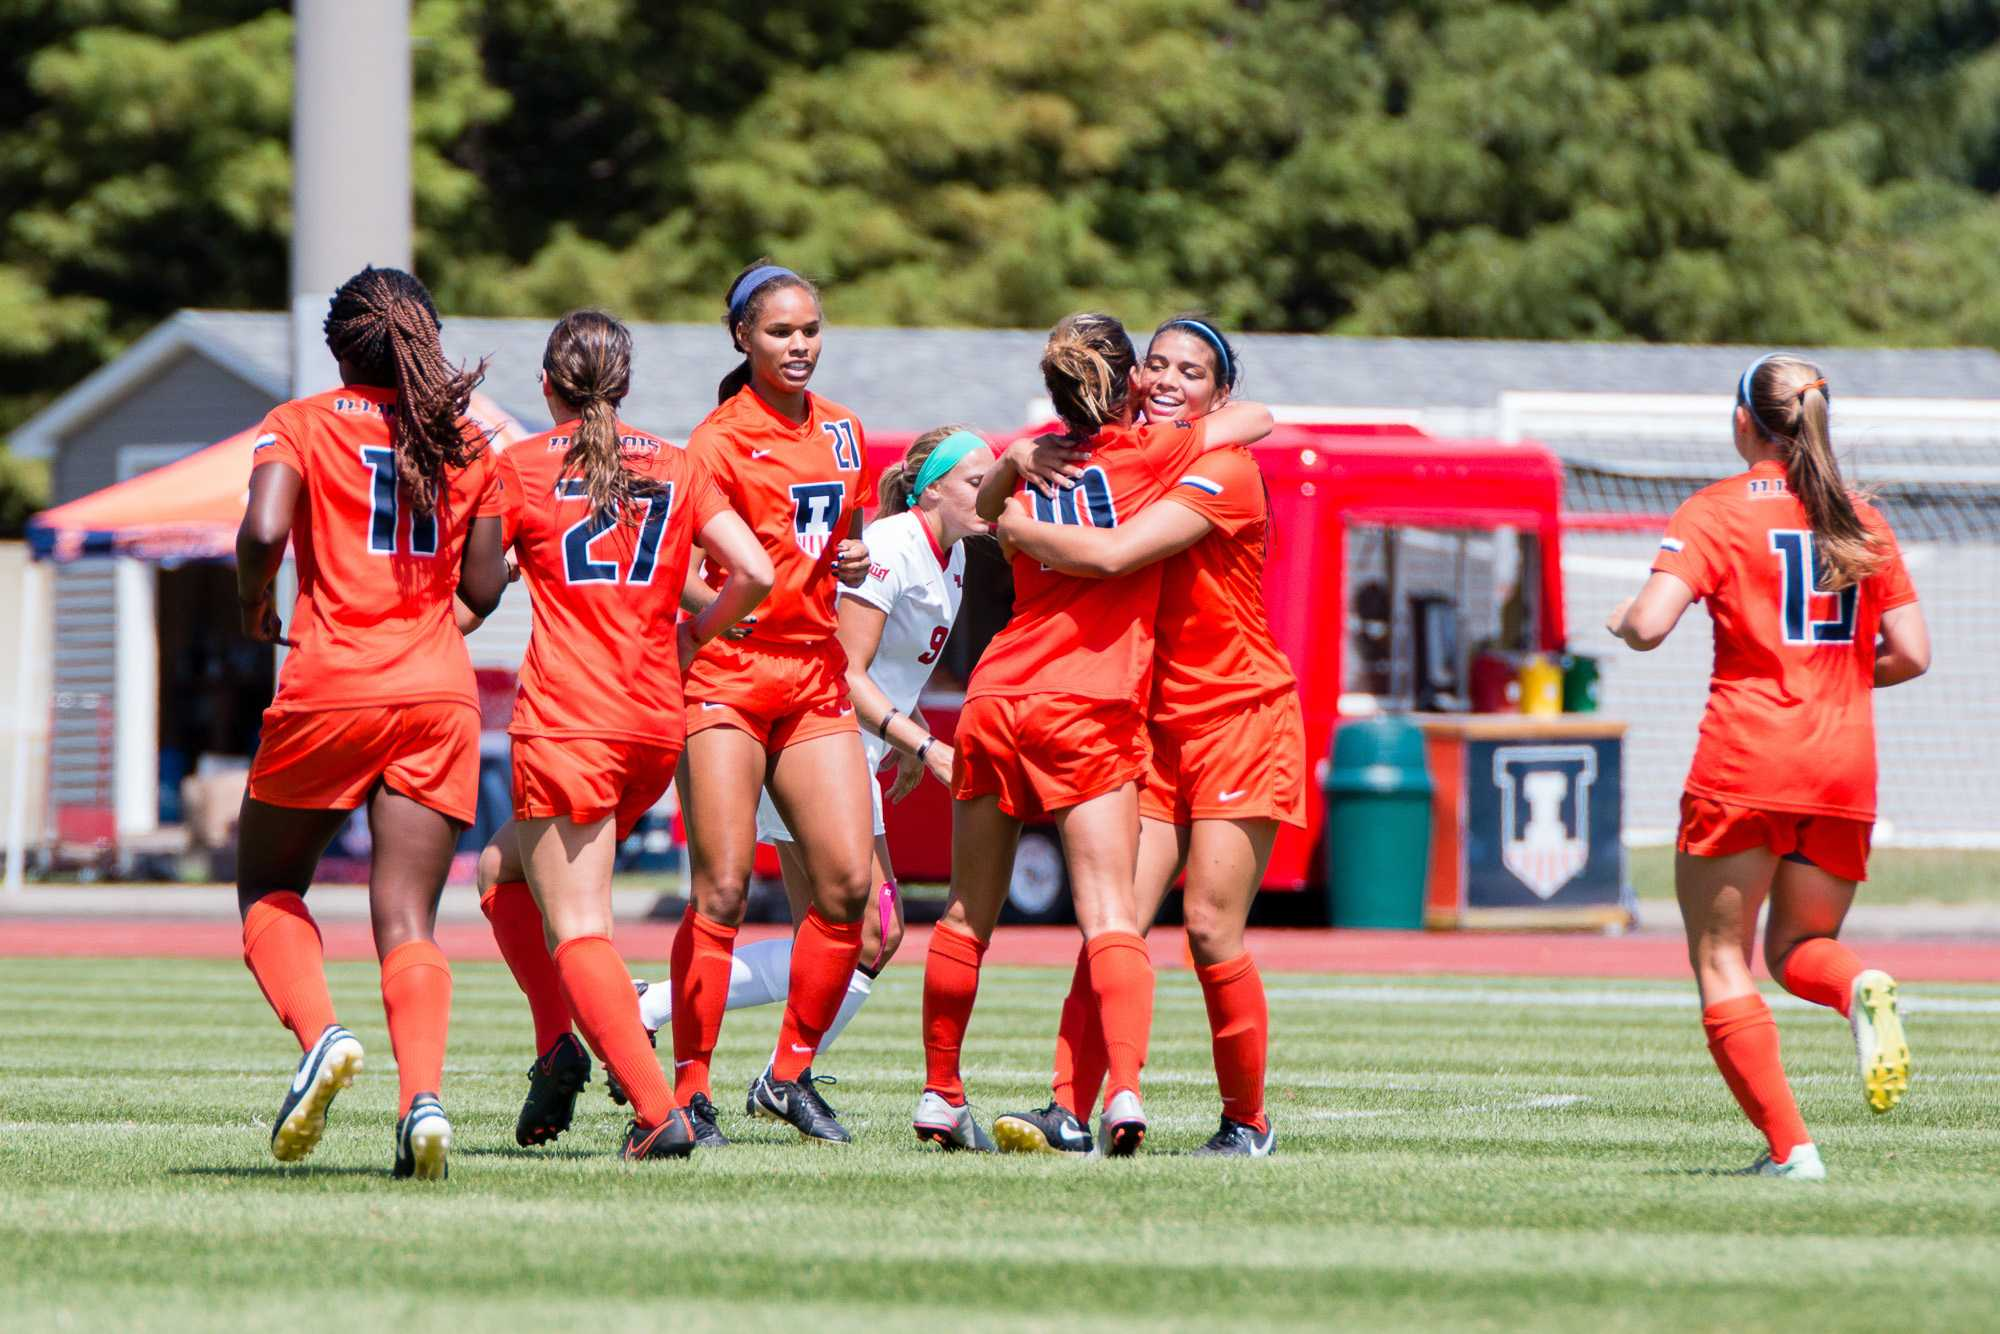 Illinois' Allison Stucky (10) gets a hug from Alicia Barker after scoring the only goal in the game against Illinois State at Illnois Soccer Stadium on Sunday, August 21. The Illini won 1-0.